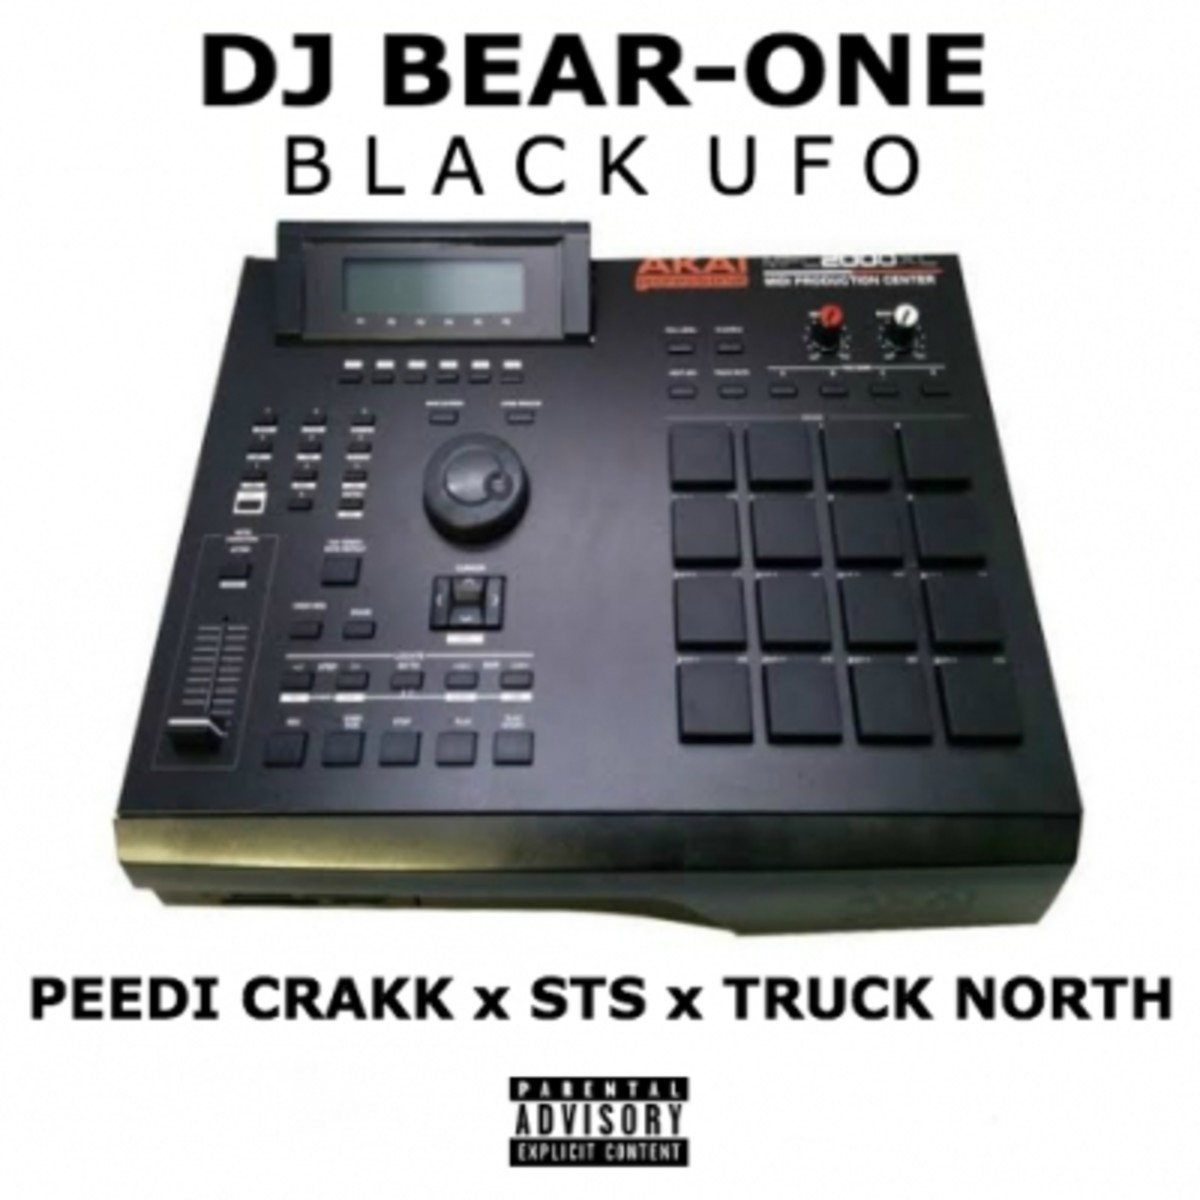 dj-bear-one-black-ufo.jpg